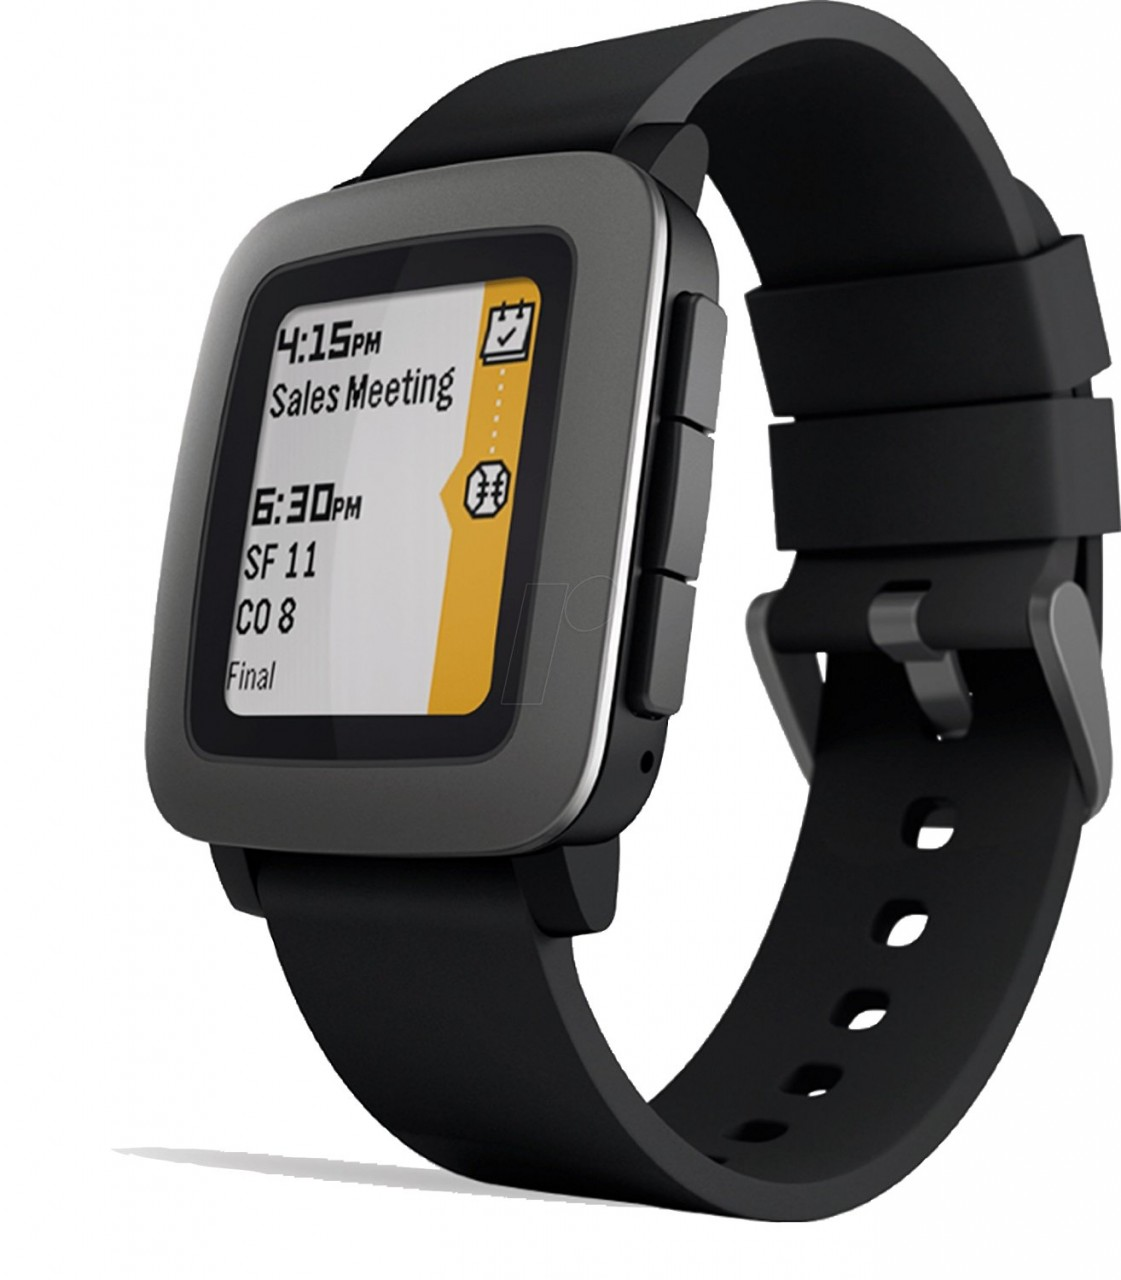 Pebble Time Smartwatch Black Price In Pakistan Homesh Red